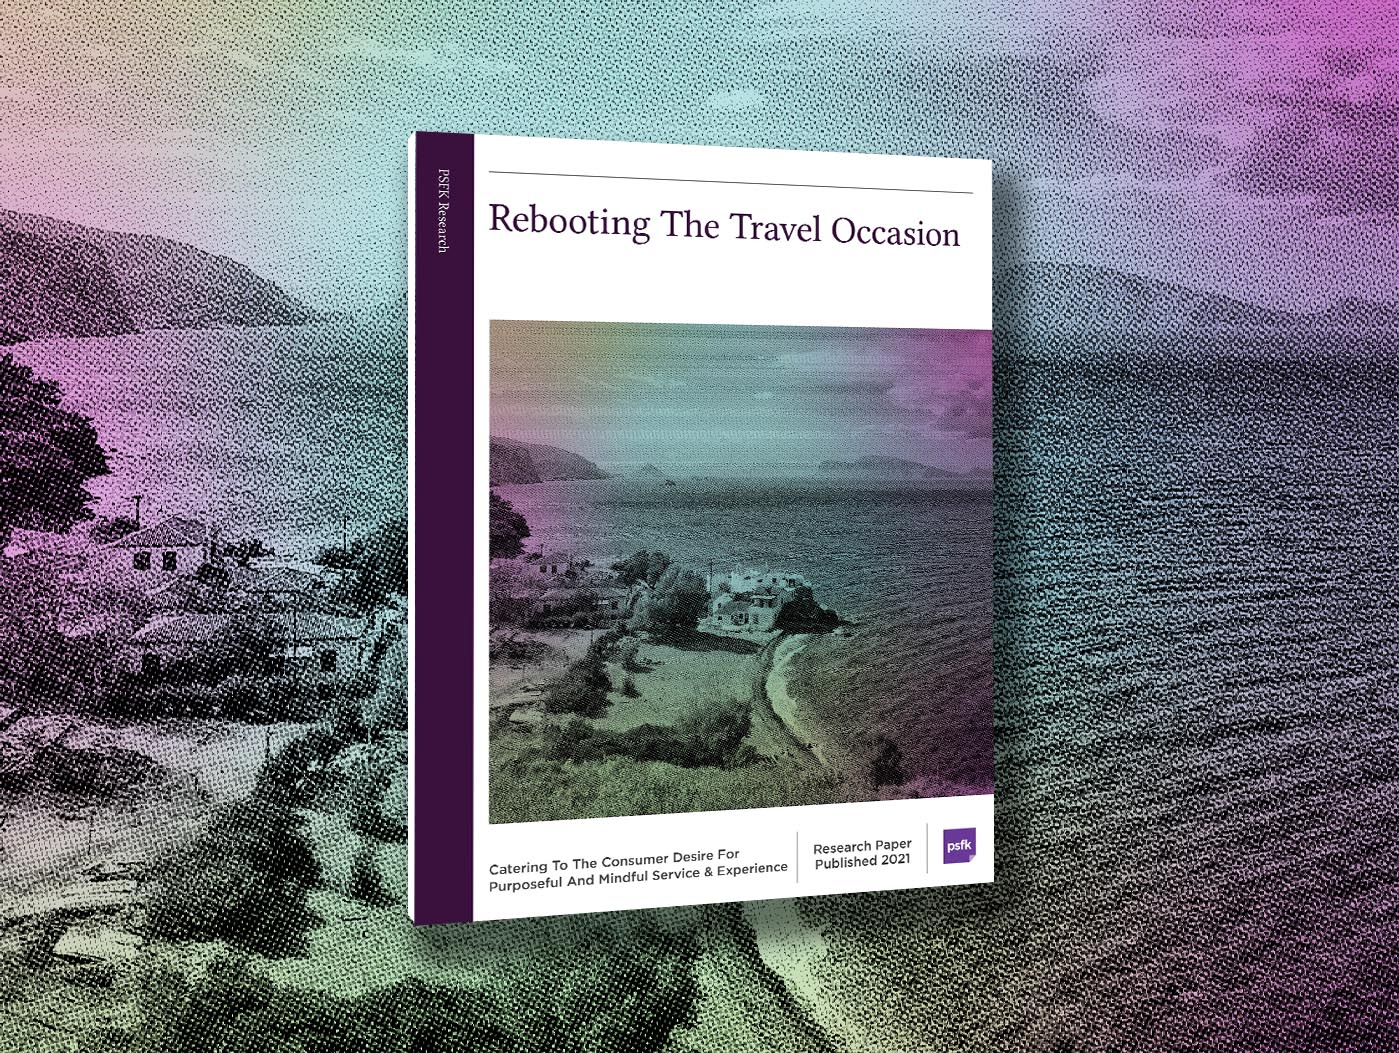 Rebooting The Travel Occasion